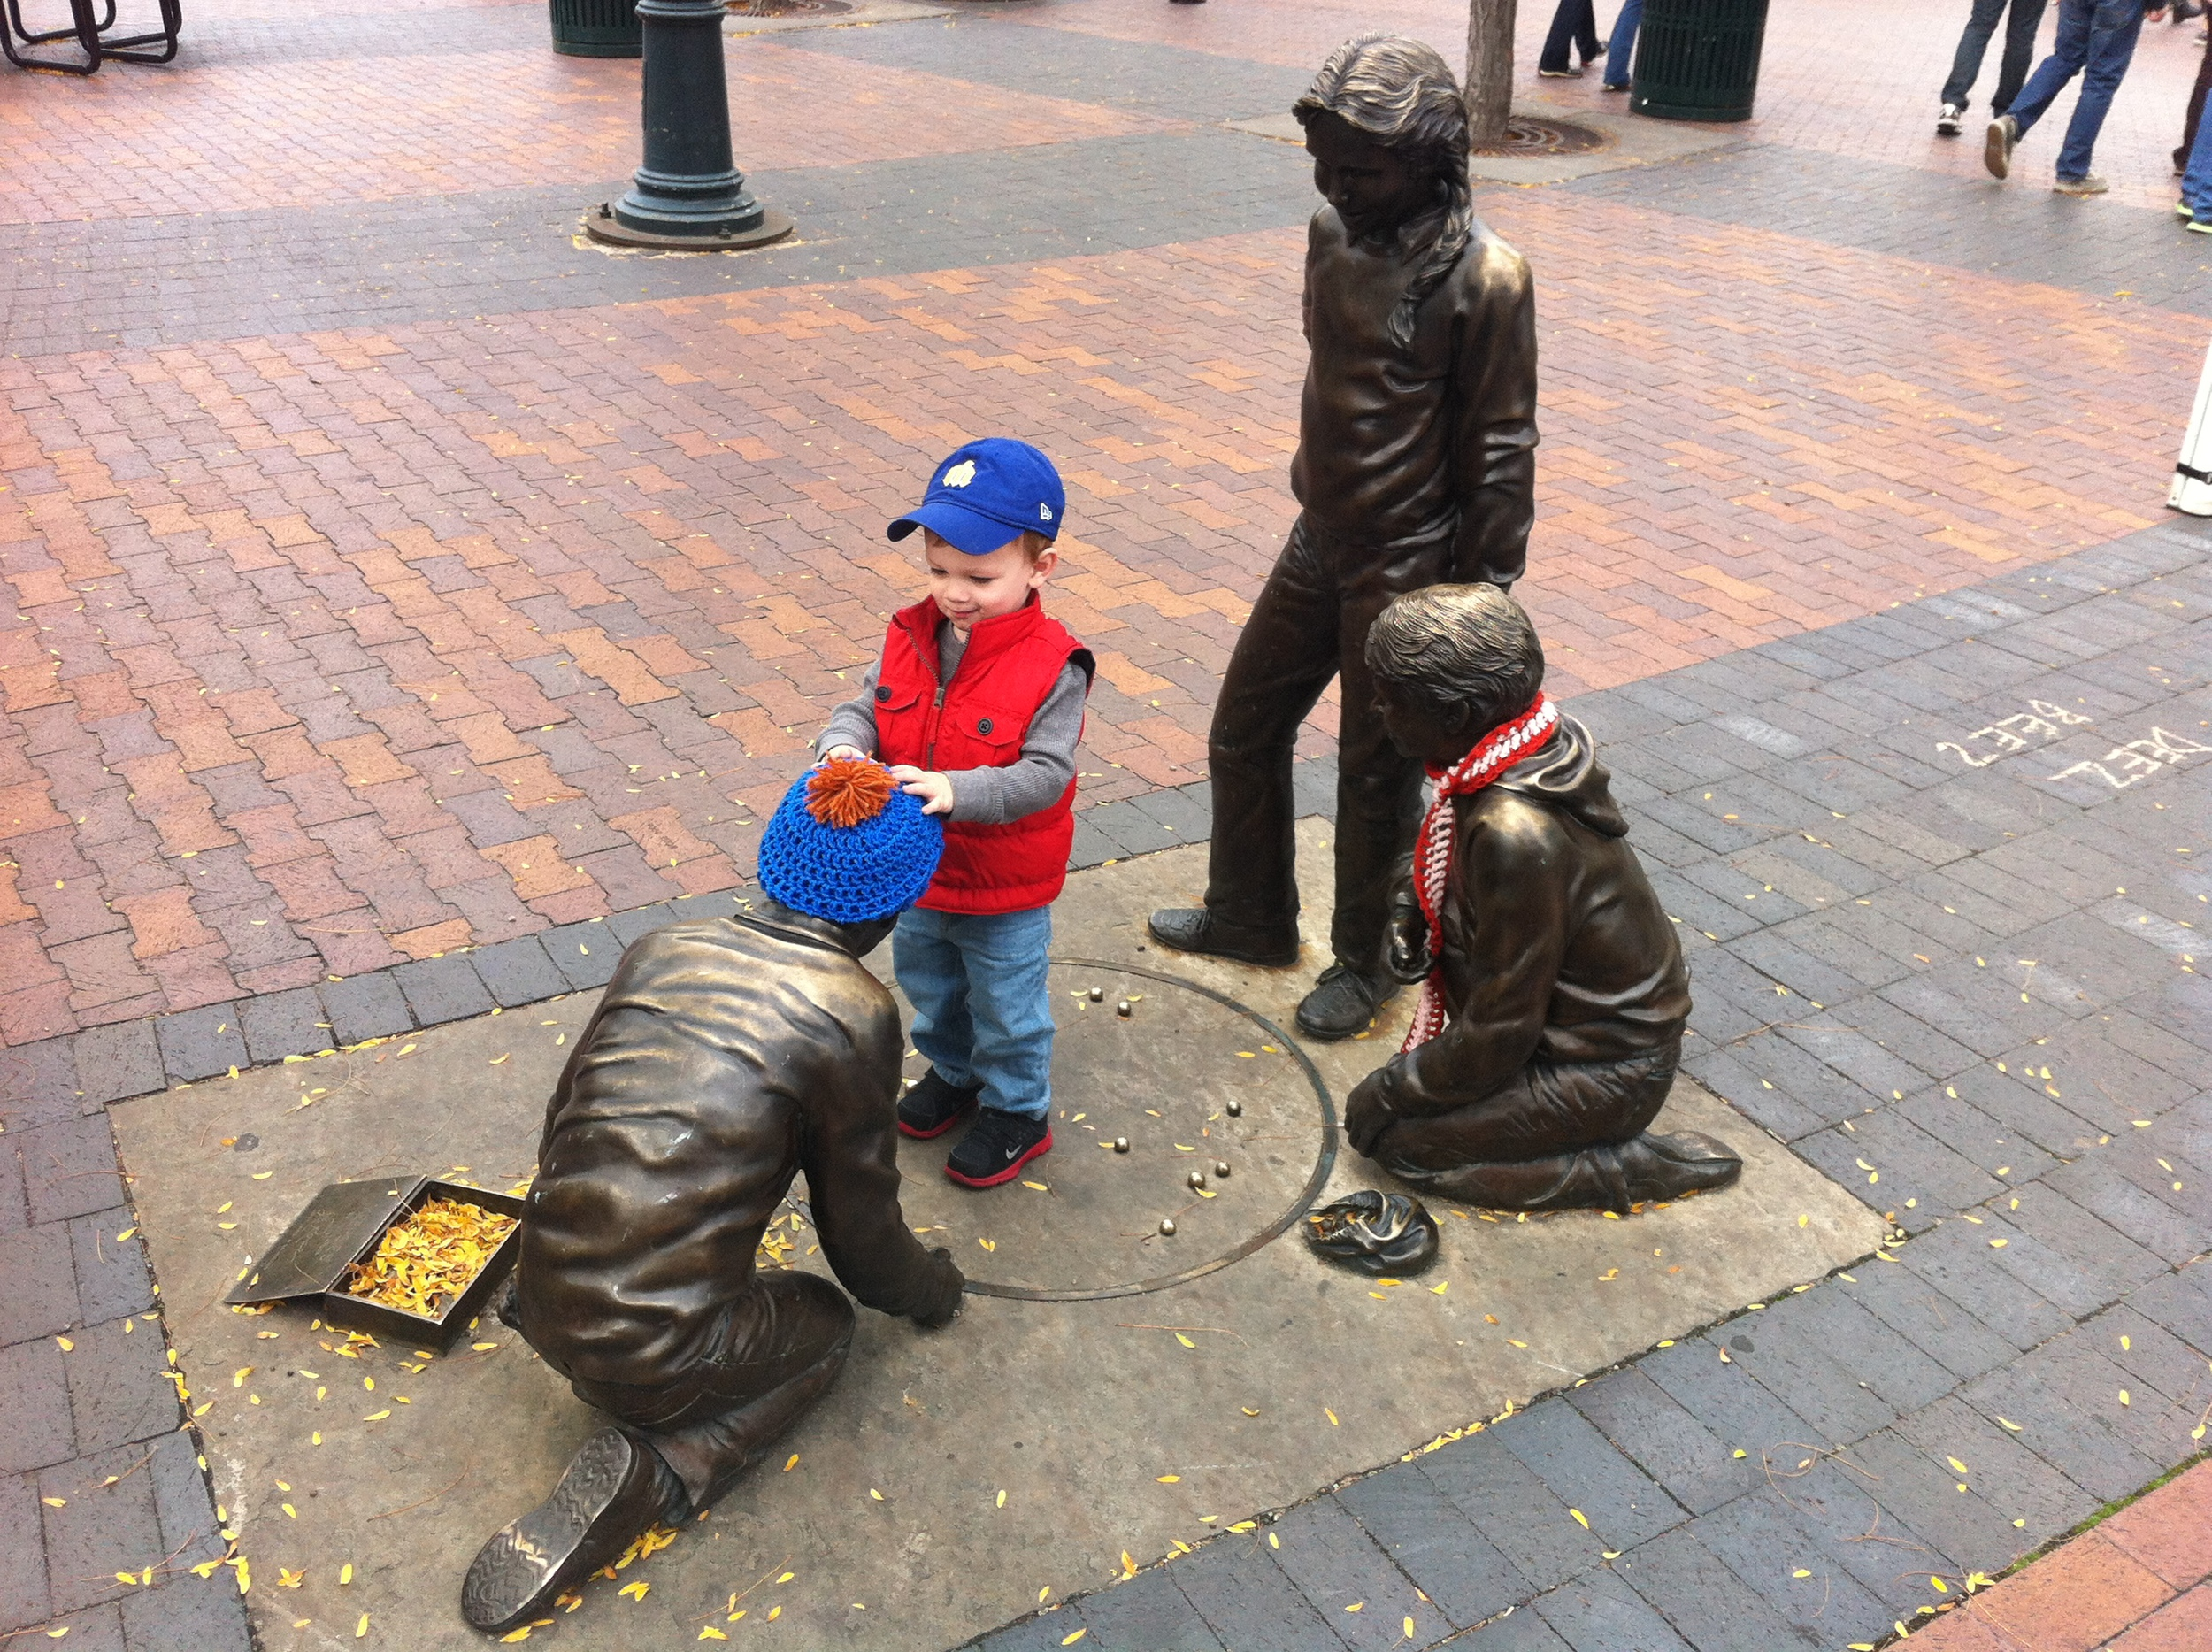 Found this little guy playing with a piece of public art depicting children playing marbles.  Urban playgrounds should appeal to people of all ages and backgrounds. It isn't just about the restaurants, shops, festivals, museums, attractions and performing arts.